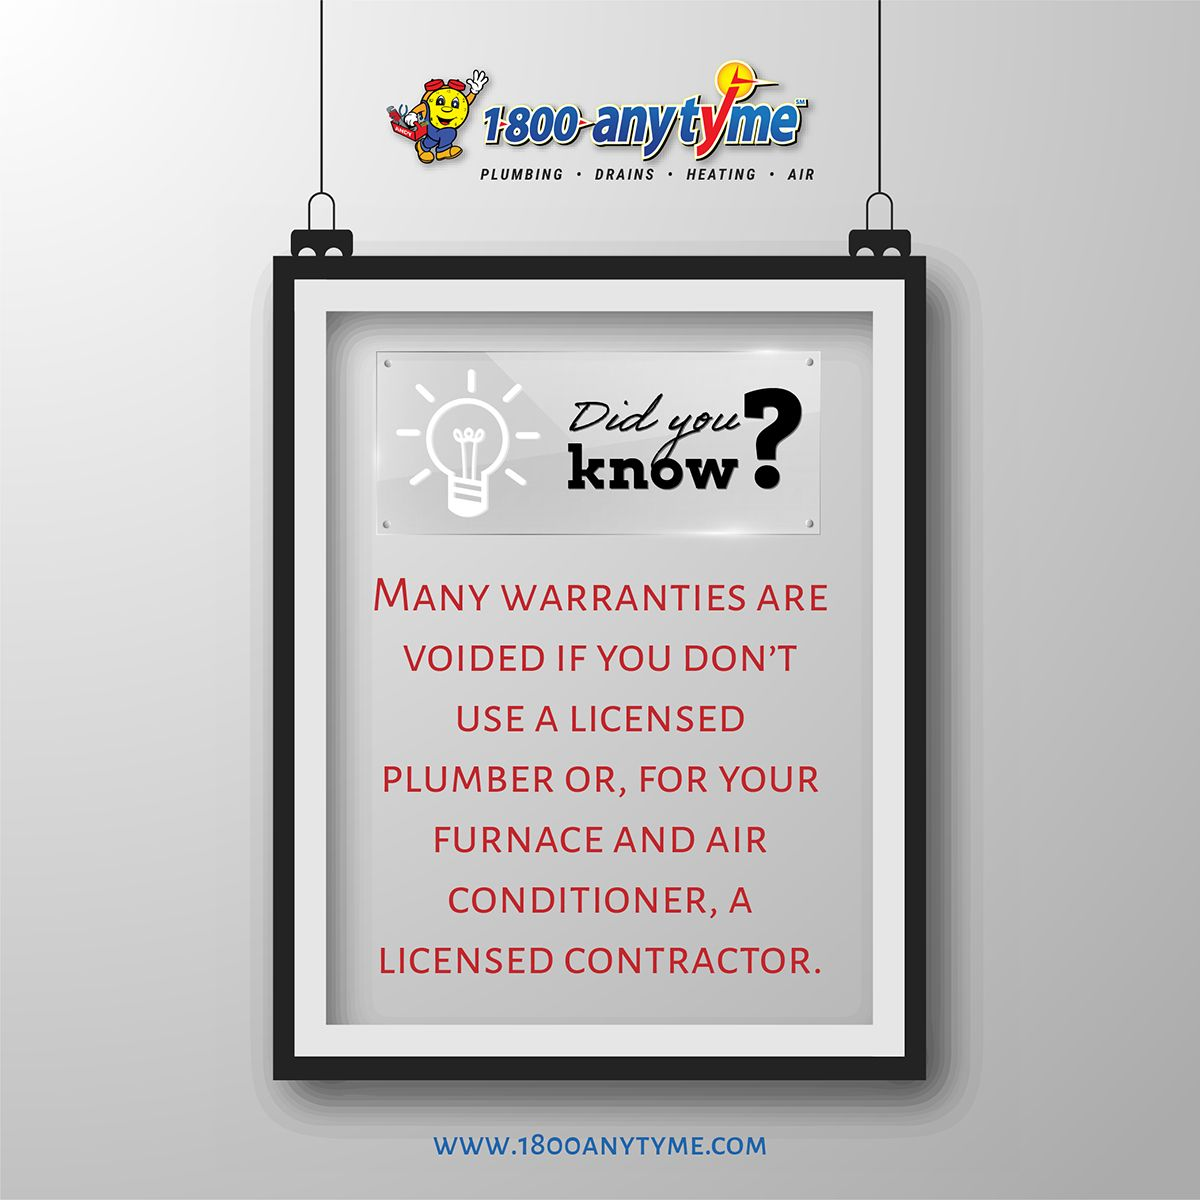 Many warranties are voided if you don't use a licensed